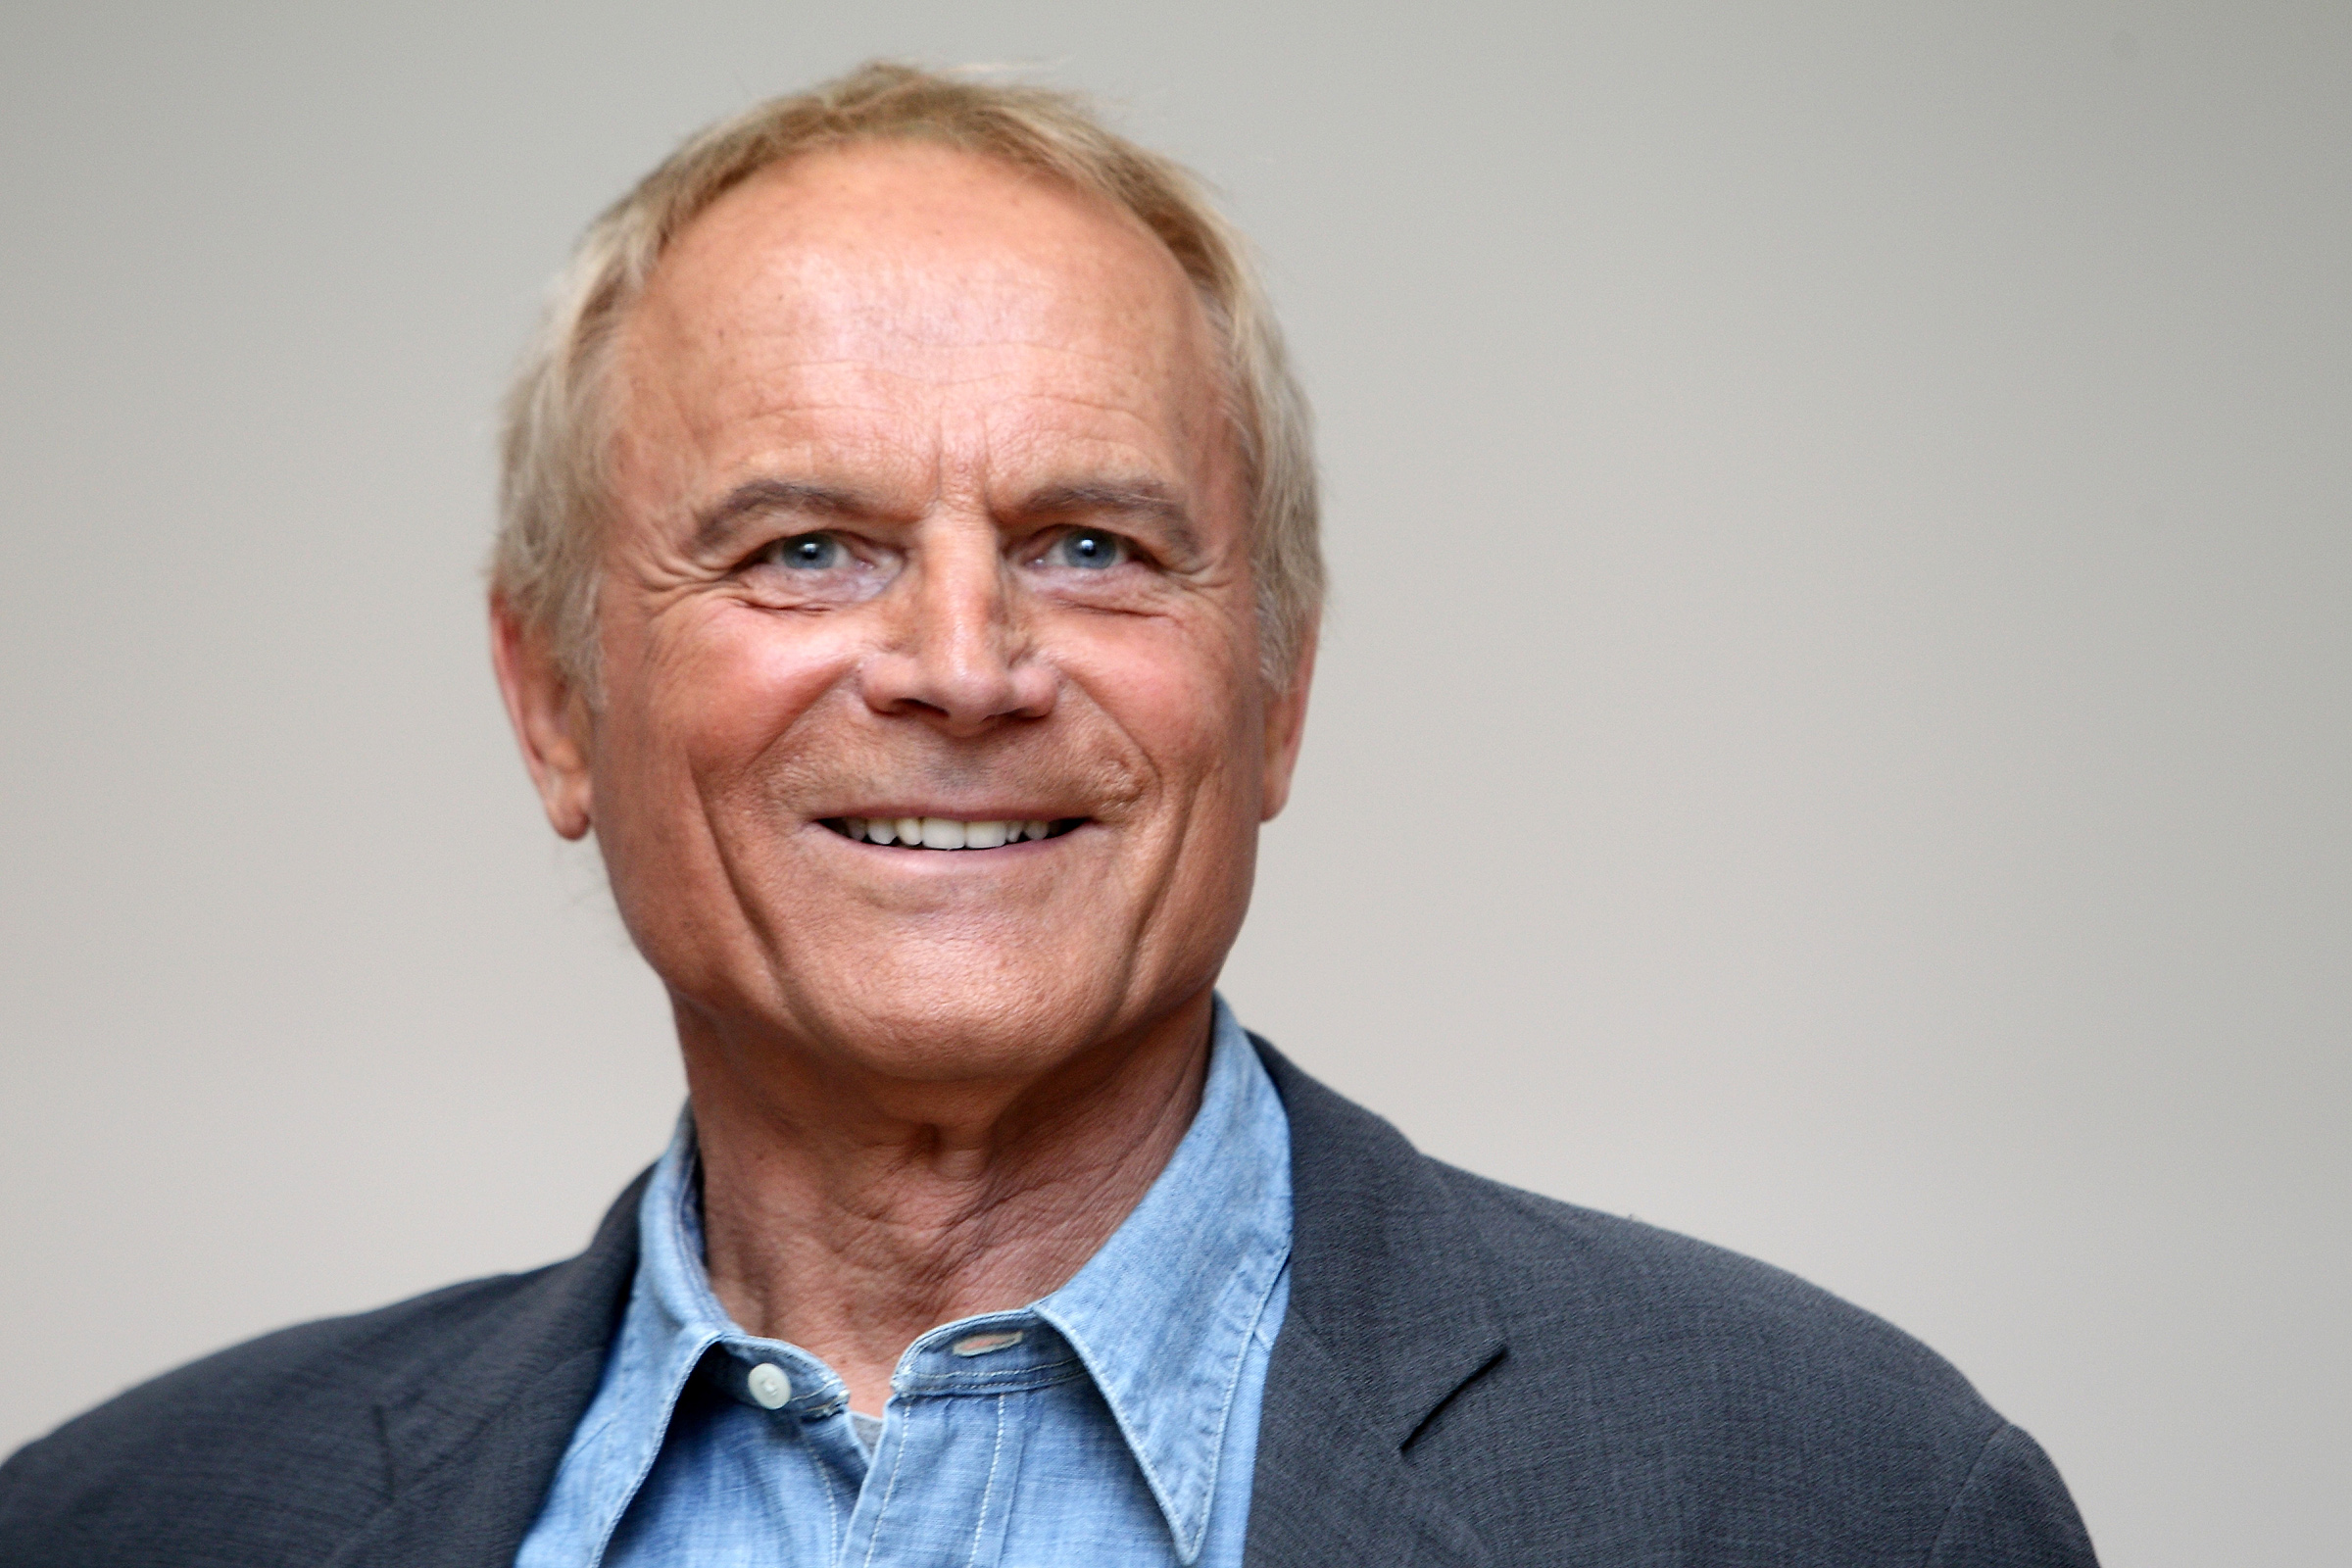 TerenceHill sur topsy.one